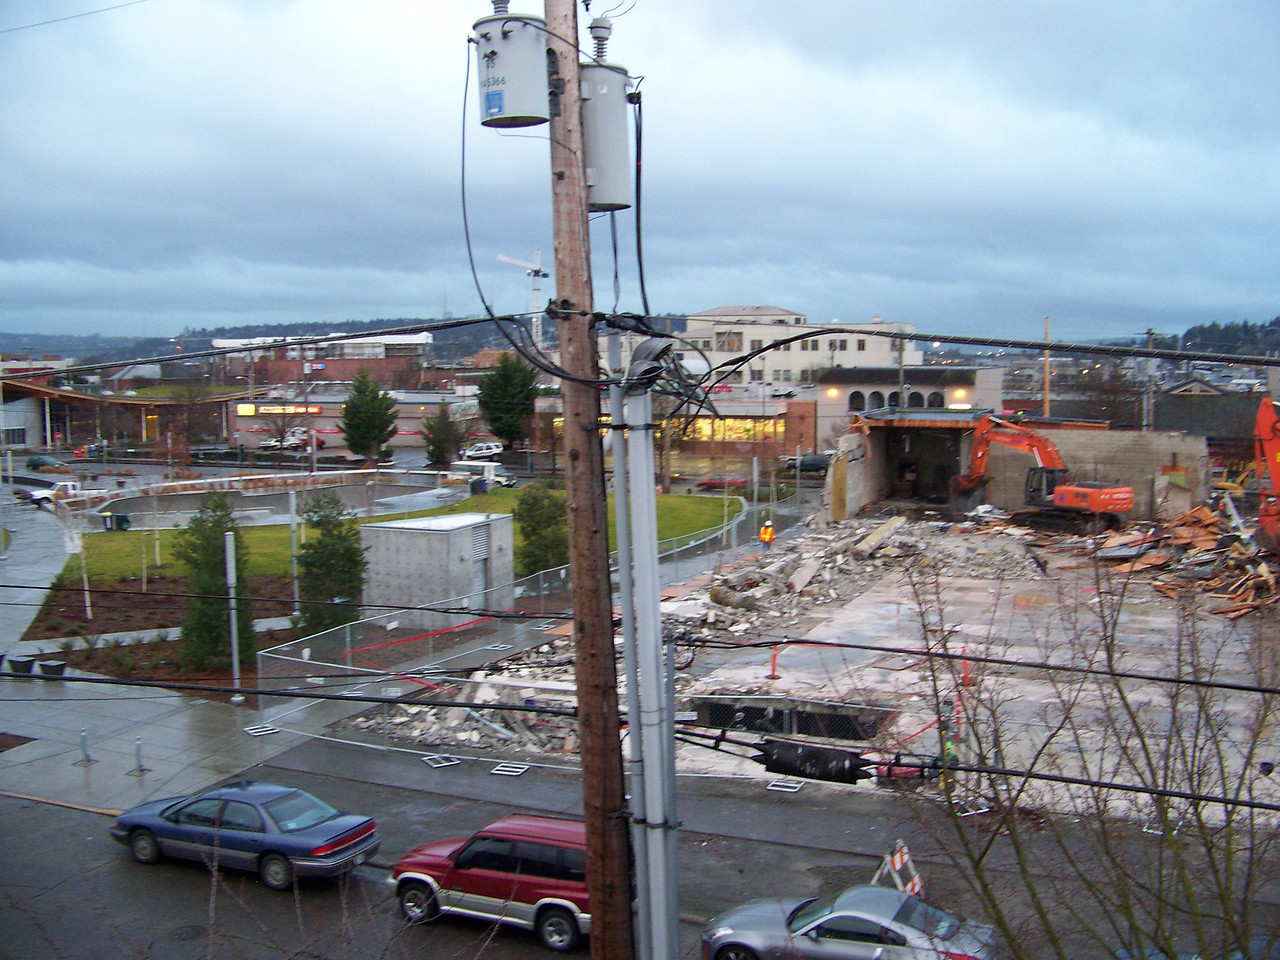 January 10, 2008.  To the east of the demolished Ballard QFC building, I could now see much of Ballard Commons Park that was never visible from my balcony before.